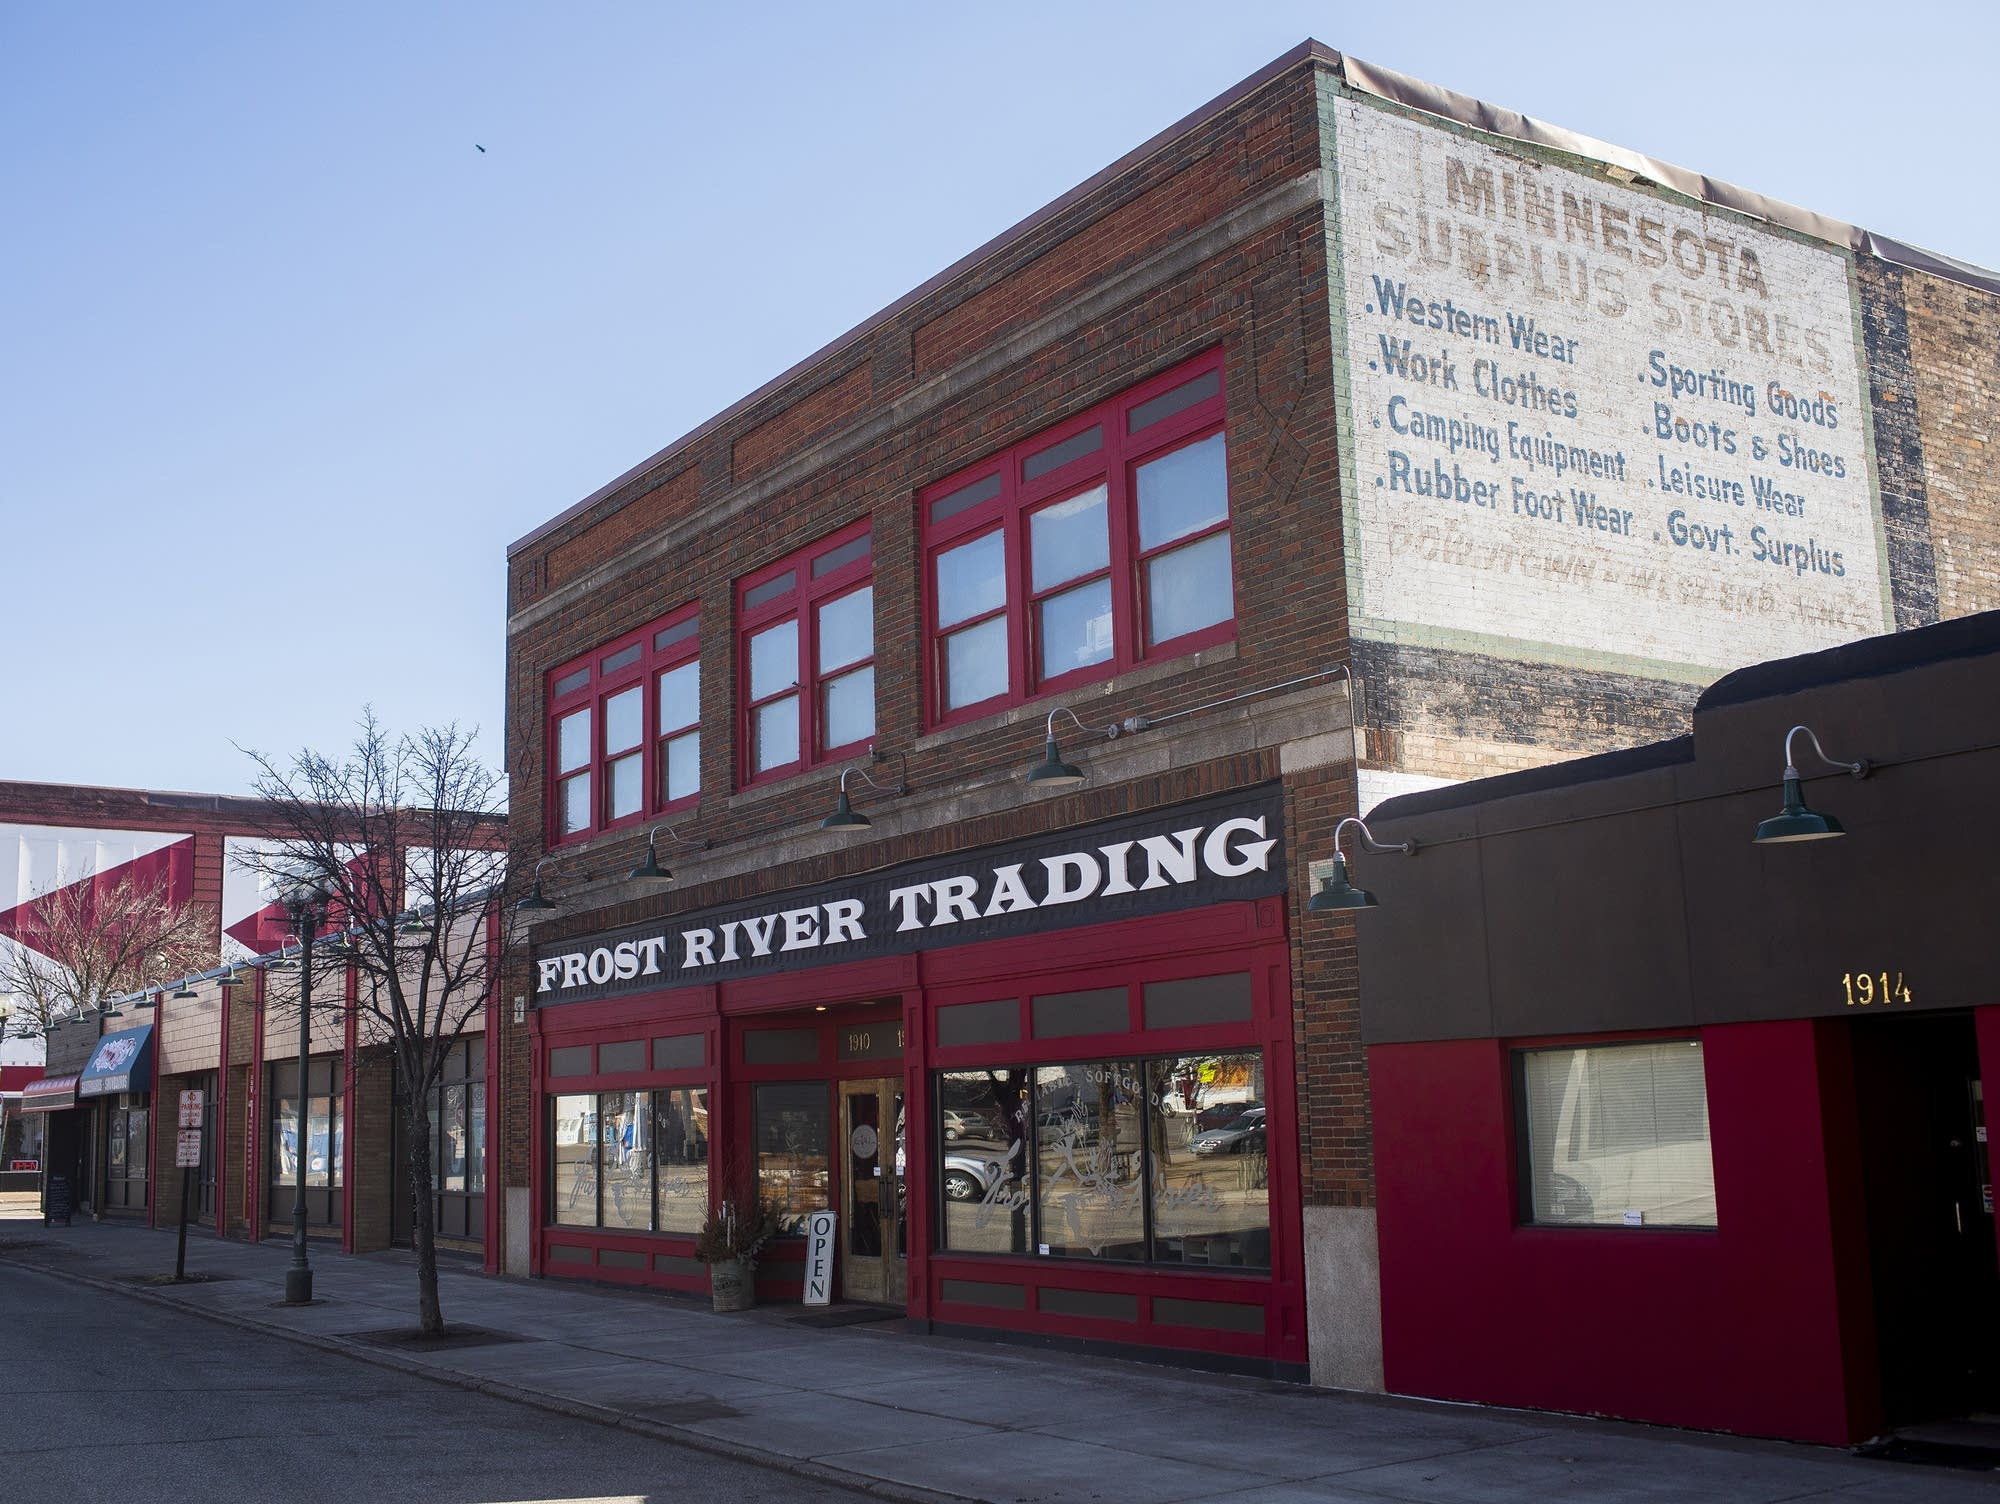 Frost River Trading, Duluth's Lincoln Park neighborhood